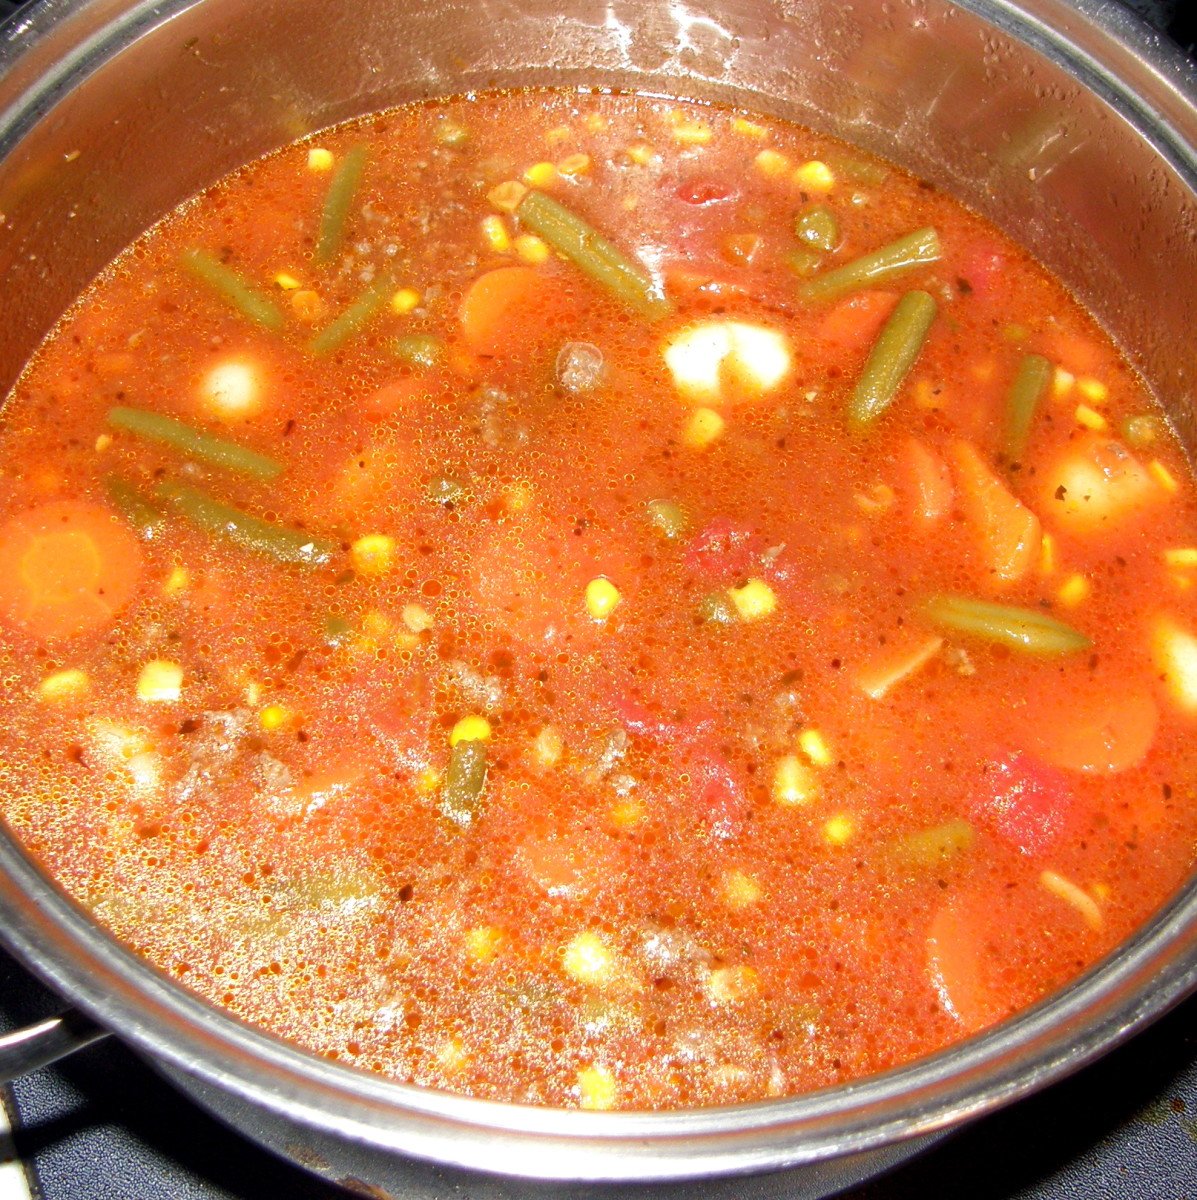 Add the broth.  Gently stir together and let simmer for about 10 minutes. In a small bowl, combine the flour with 2 Tbsp. of water until the flour is completely dissolved & then stir it into the stew. Cover & simmer on low for another 30 minutes (if